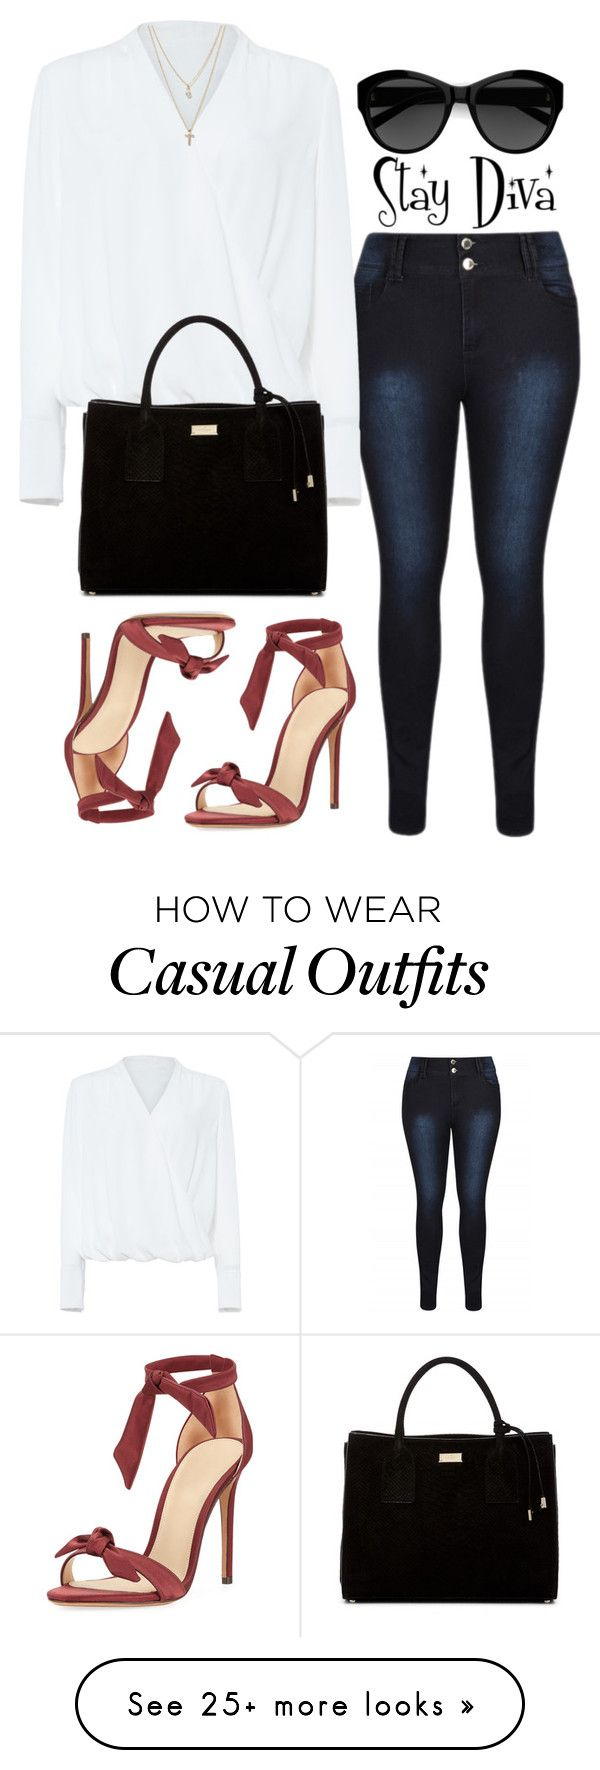 """Casual"" by staydiva on Polyvore featuring Alexandre Birman, Damsel in a Dress, Kate Spade, Carla Zampatti and LOFT"